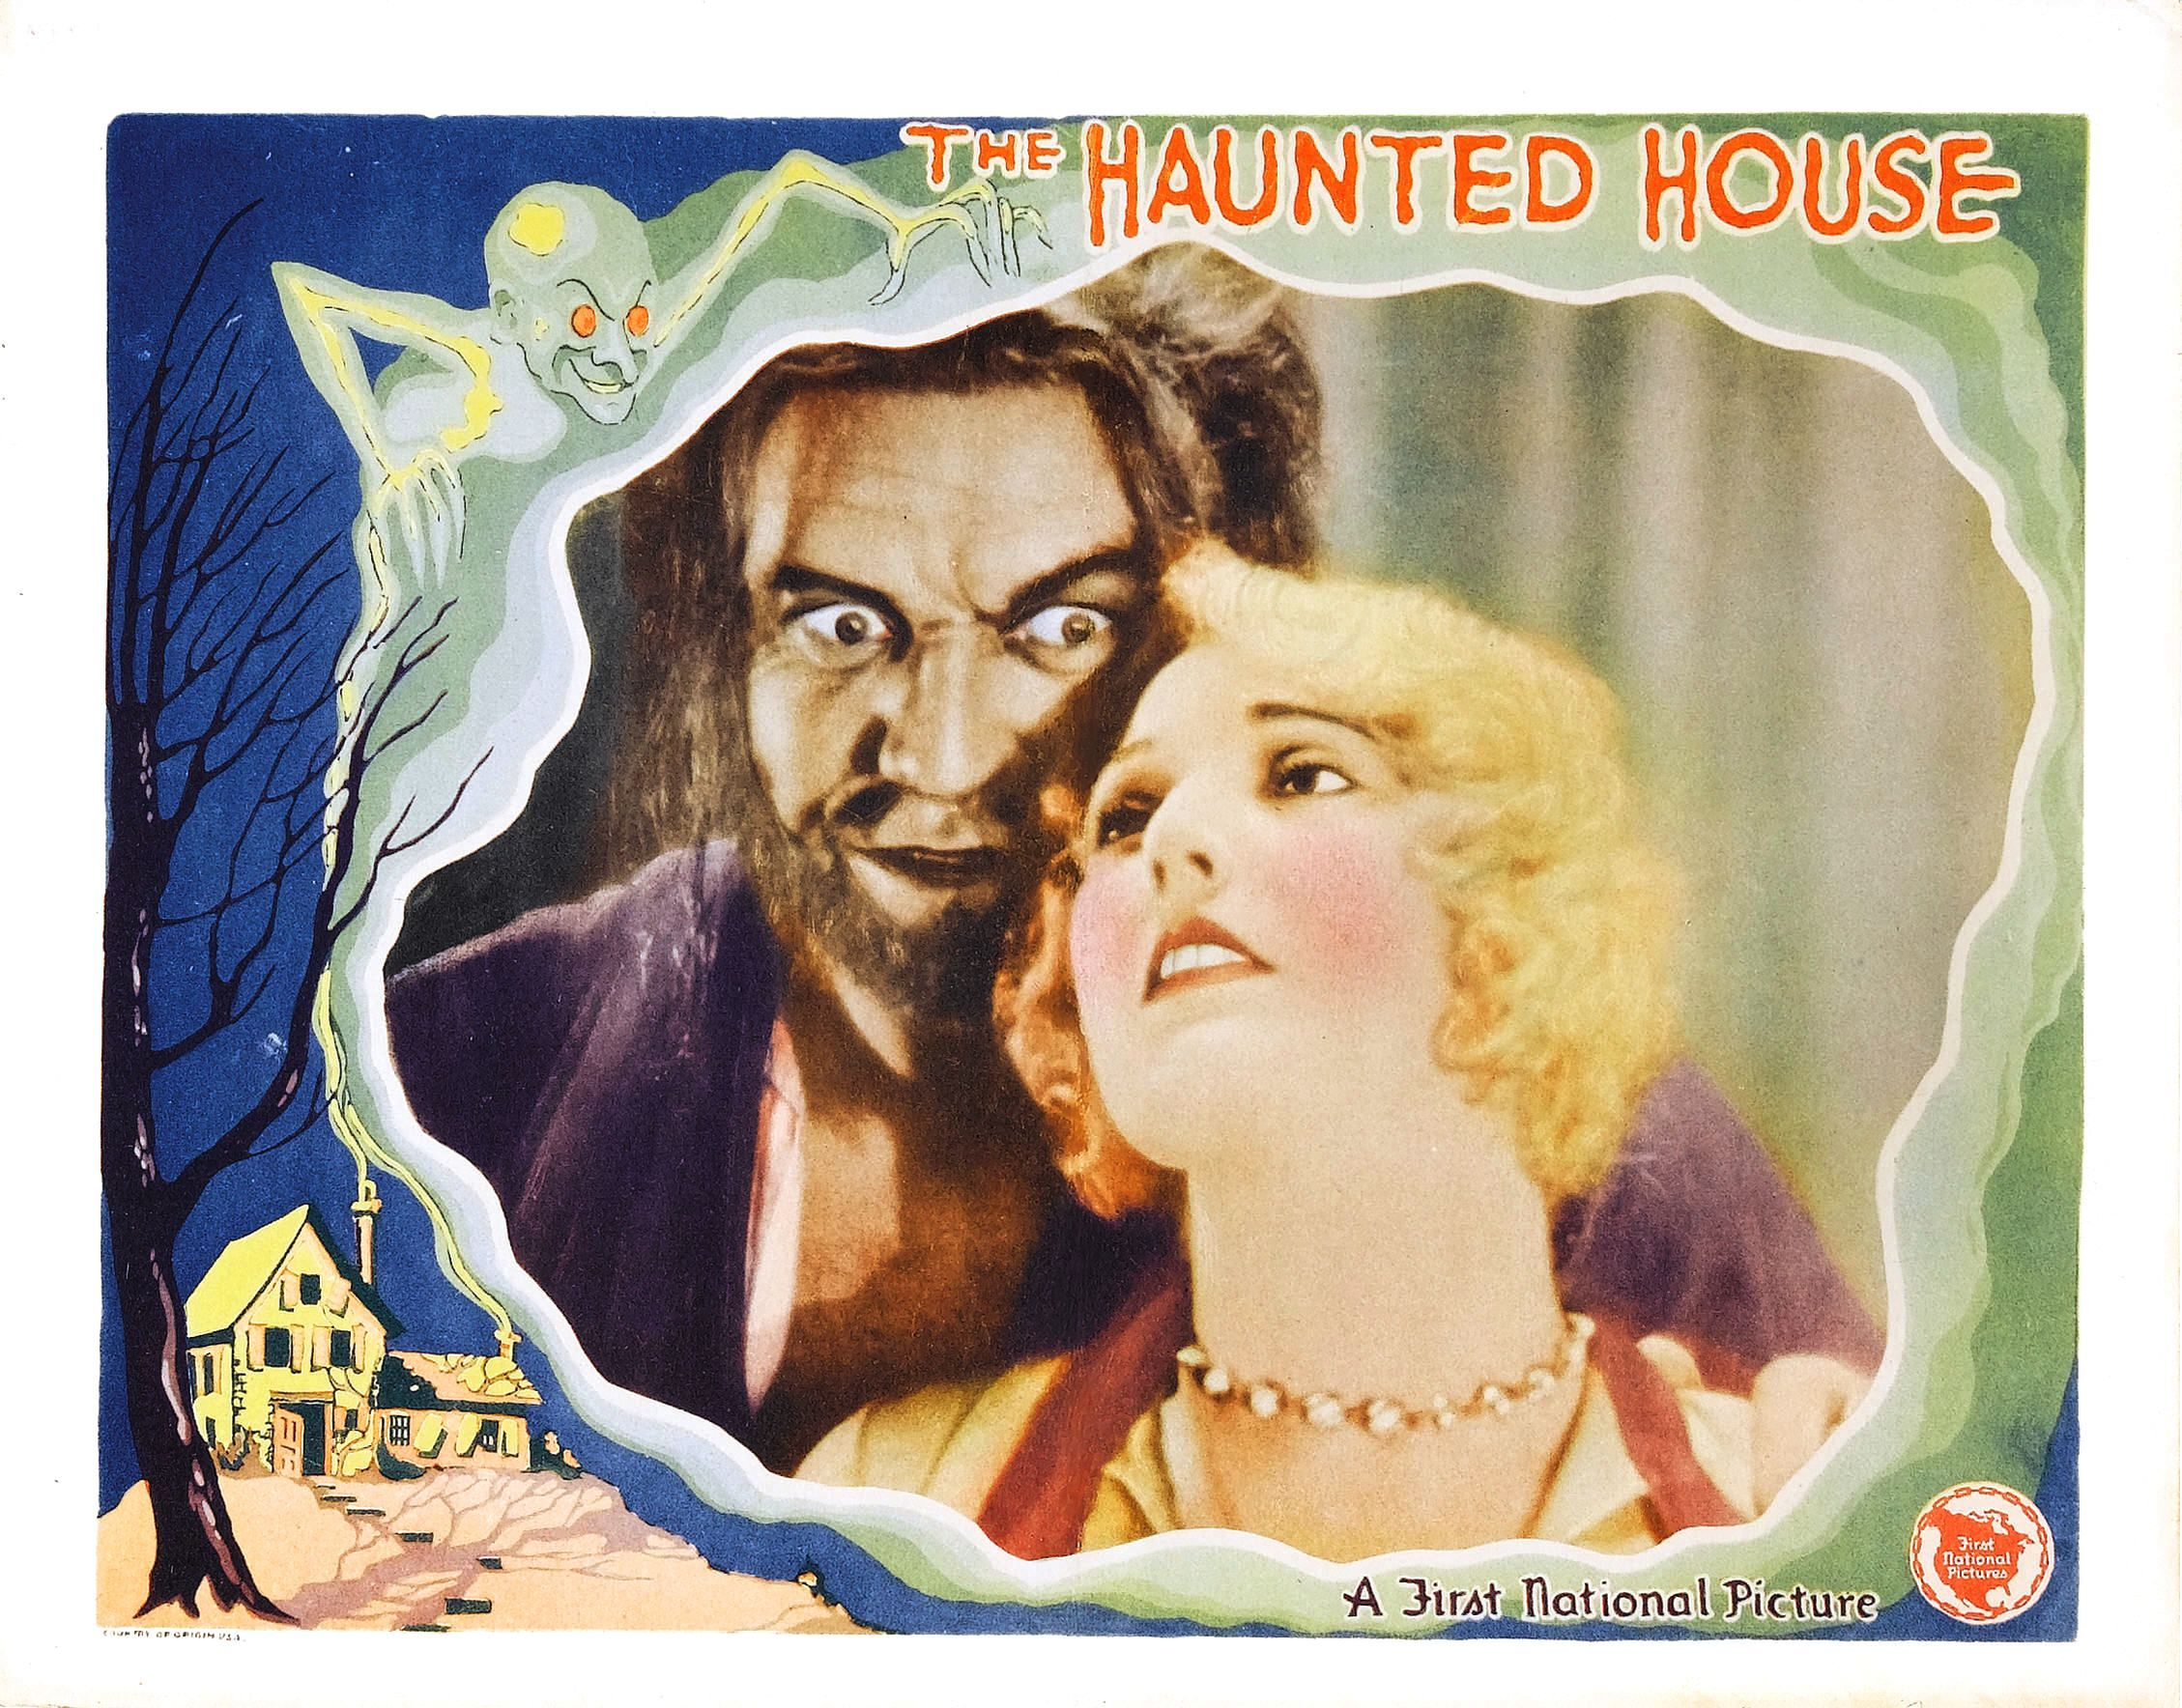 The Haunted House 1928 Film Posters Vintage Horror Movie Art